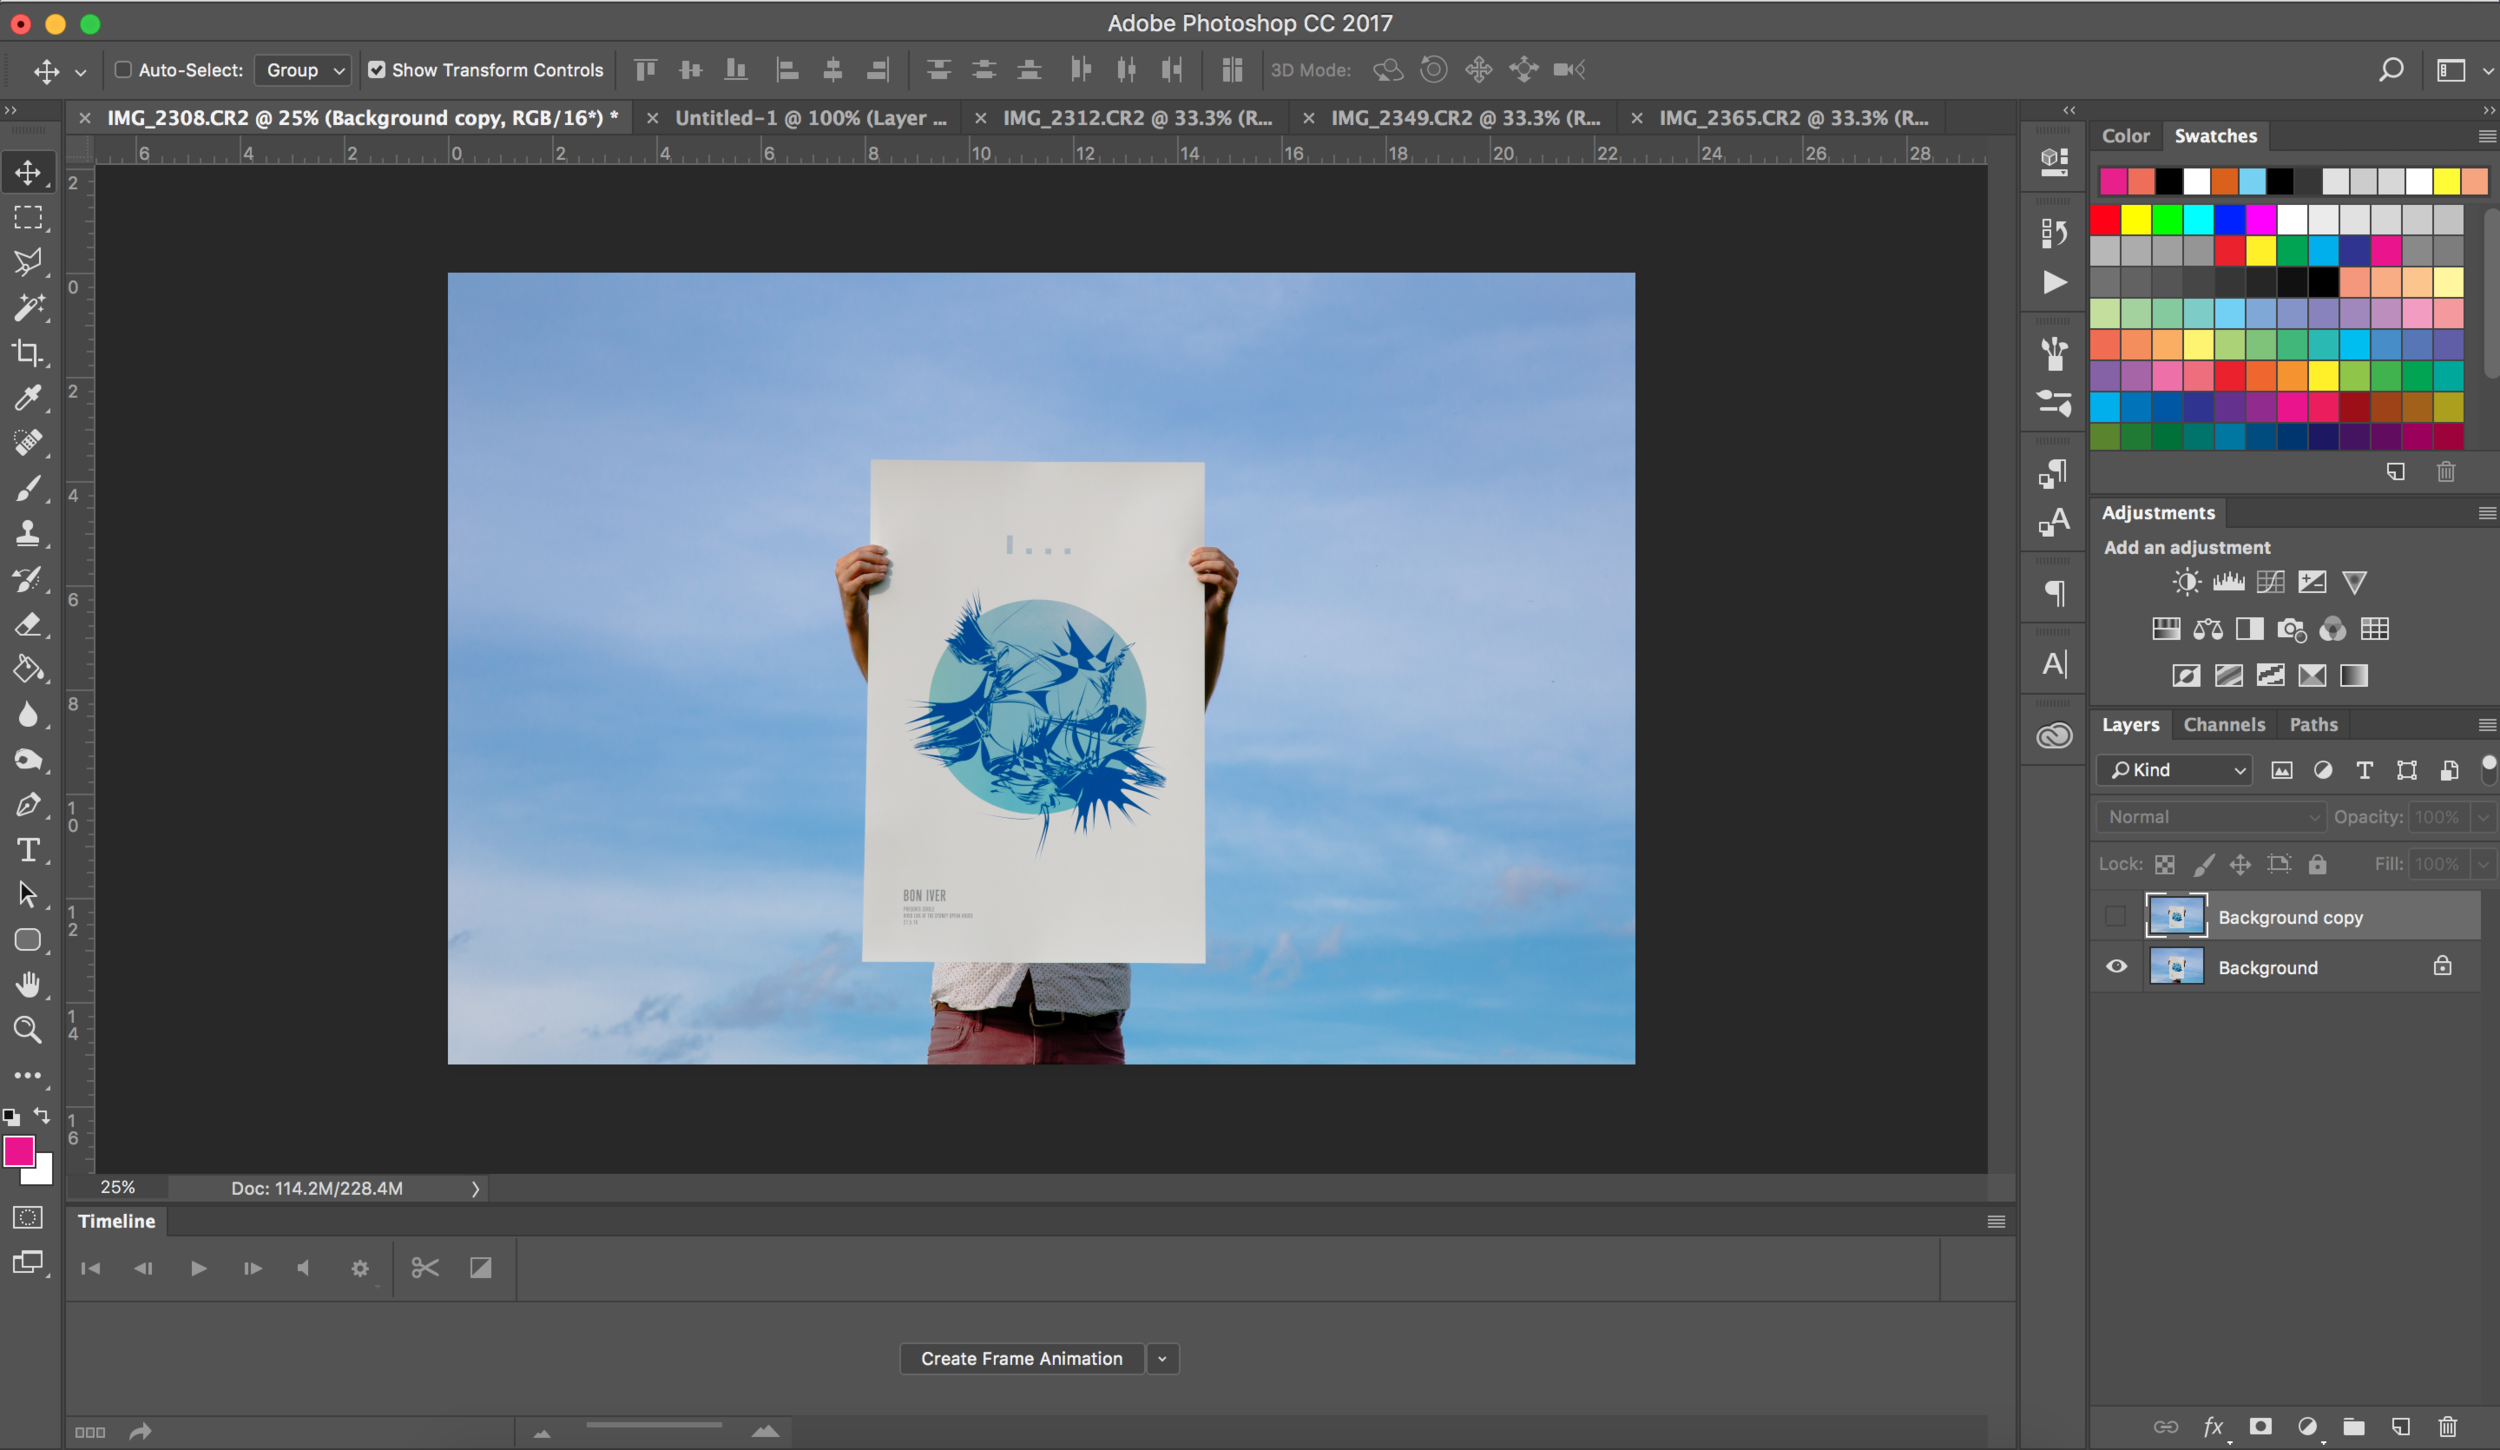 Right click image in Adobe Lightroom and open in Photoshop. Delete the legs.